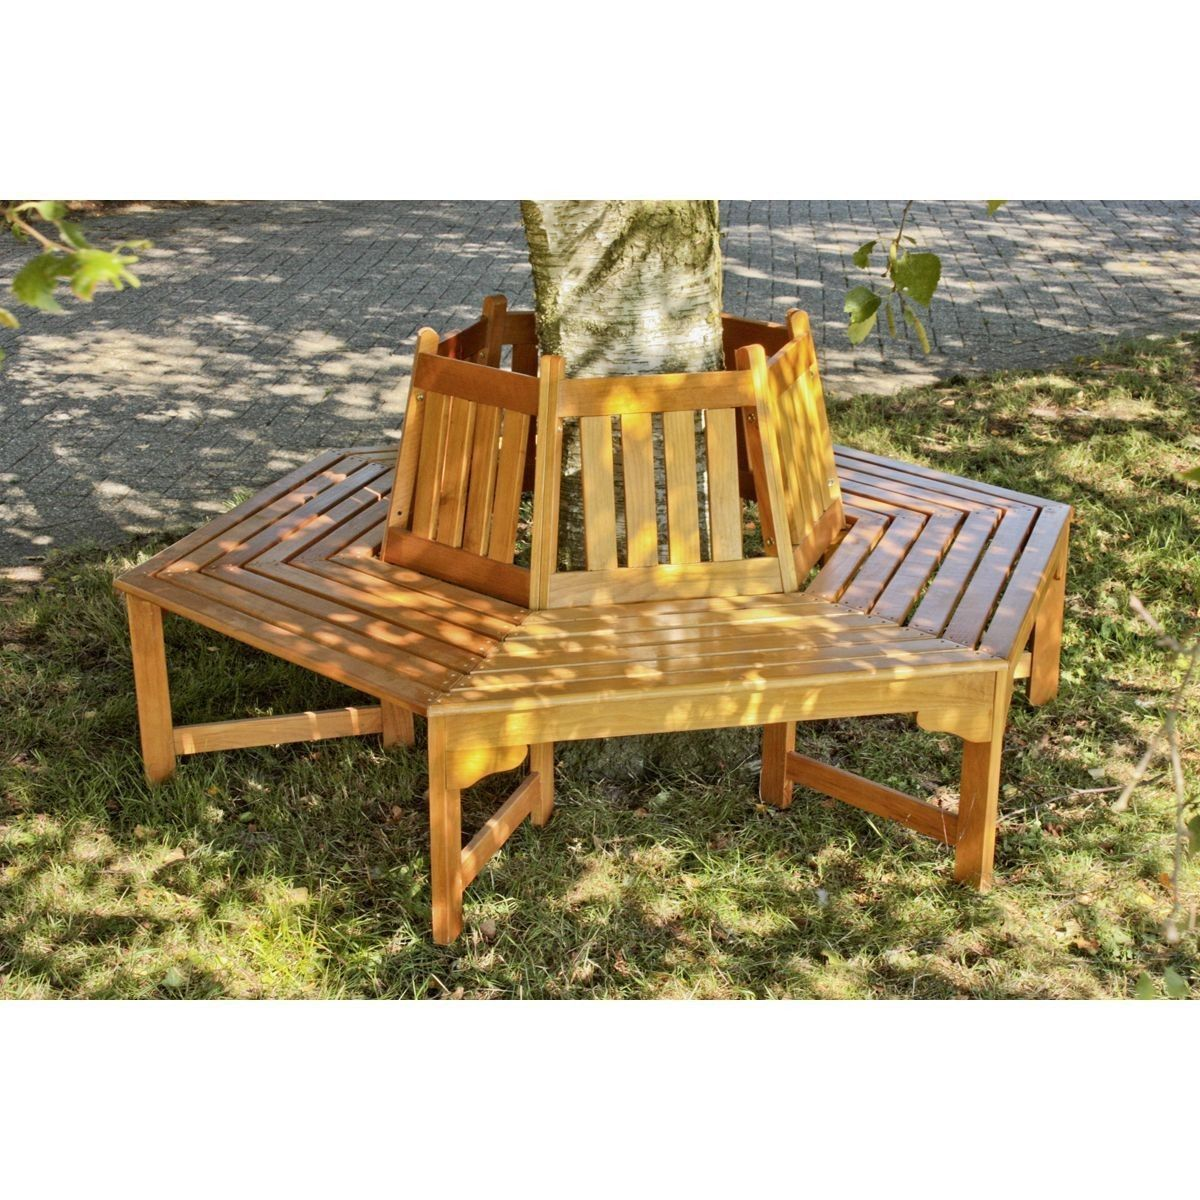 Holzbank Outdoor Holzbank Outdoor Top Holzbank With Holzbank Outdoor Awesome